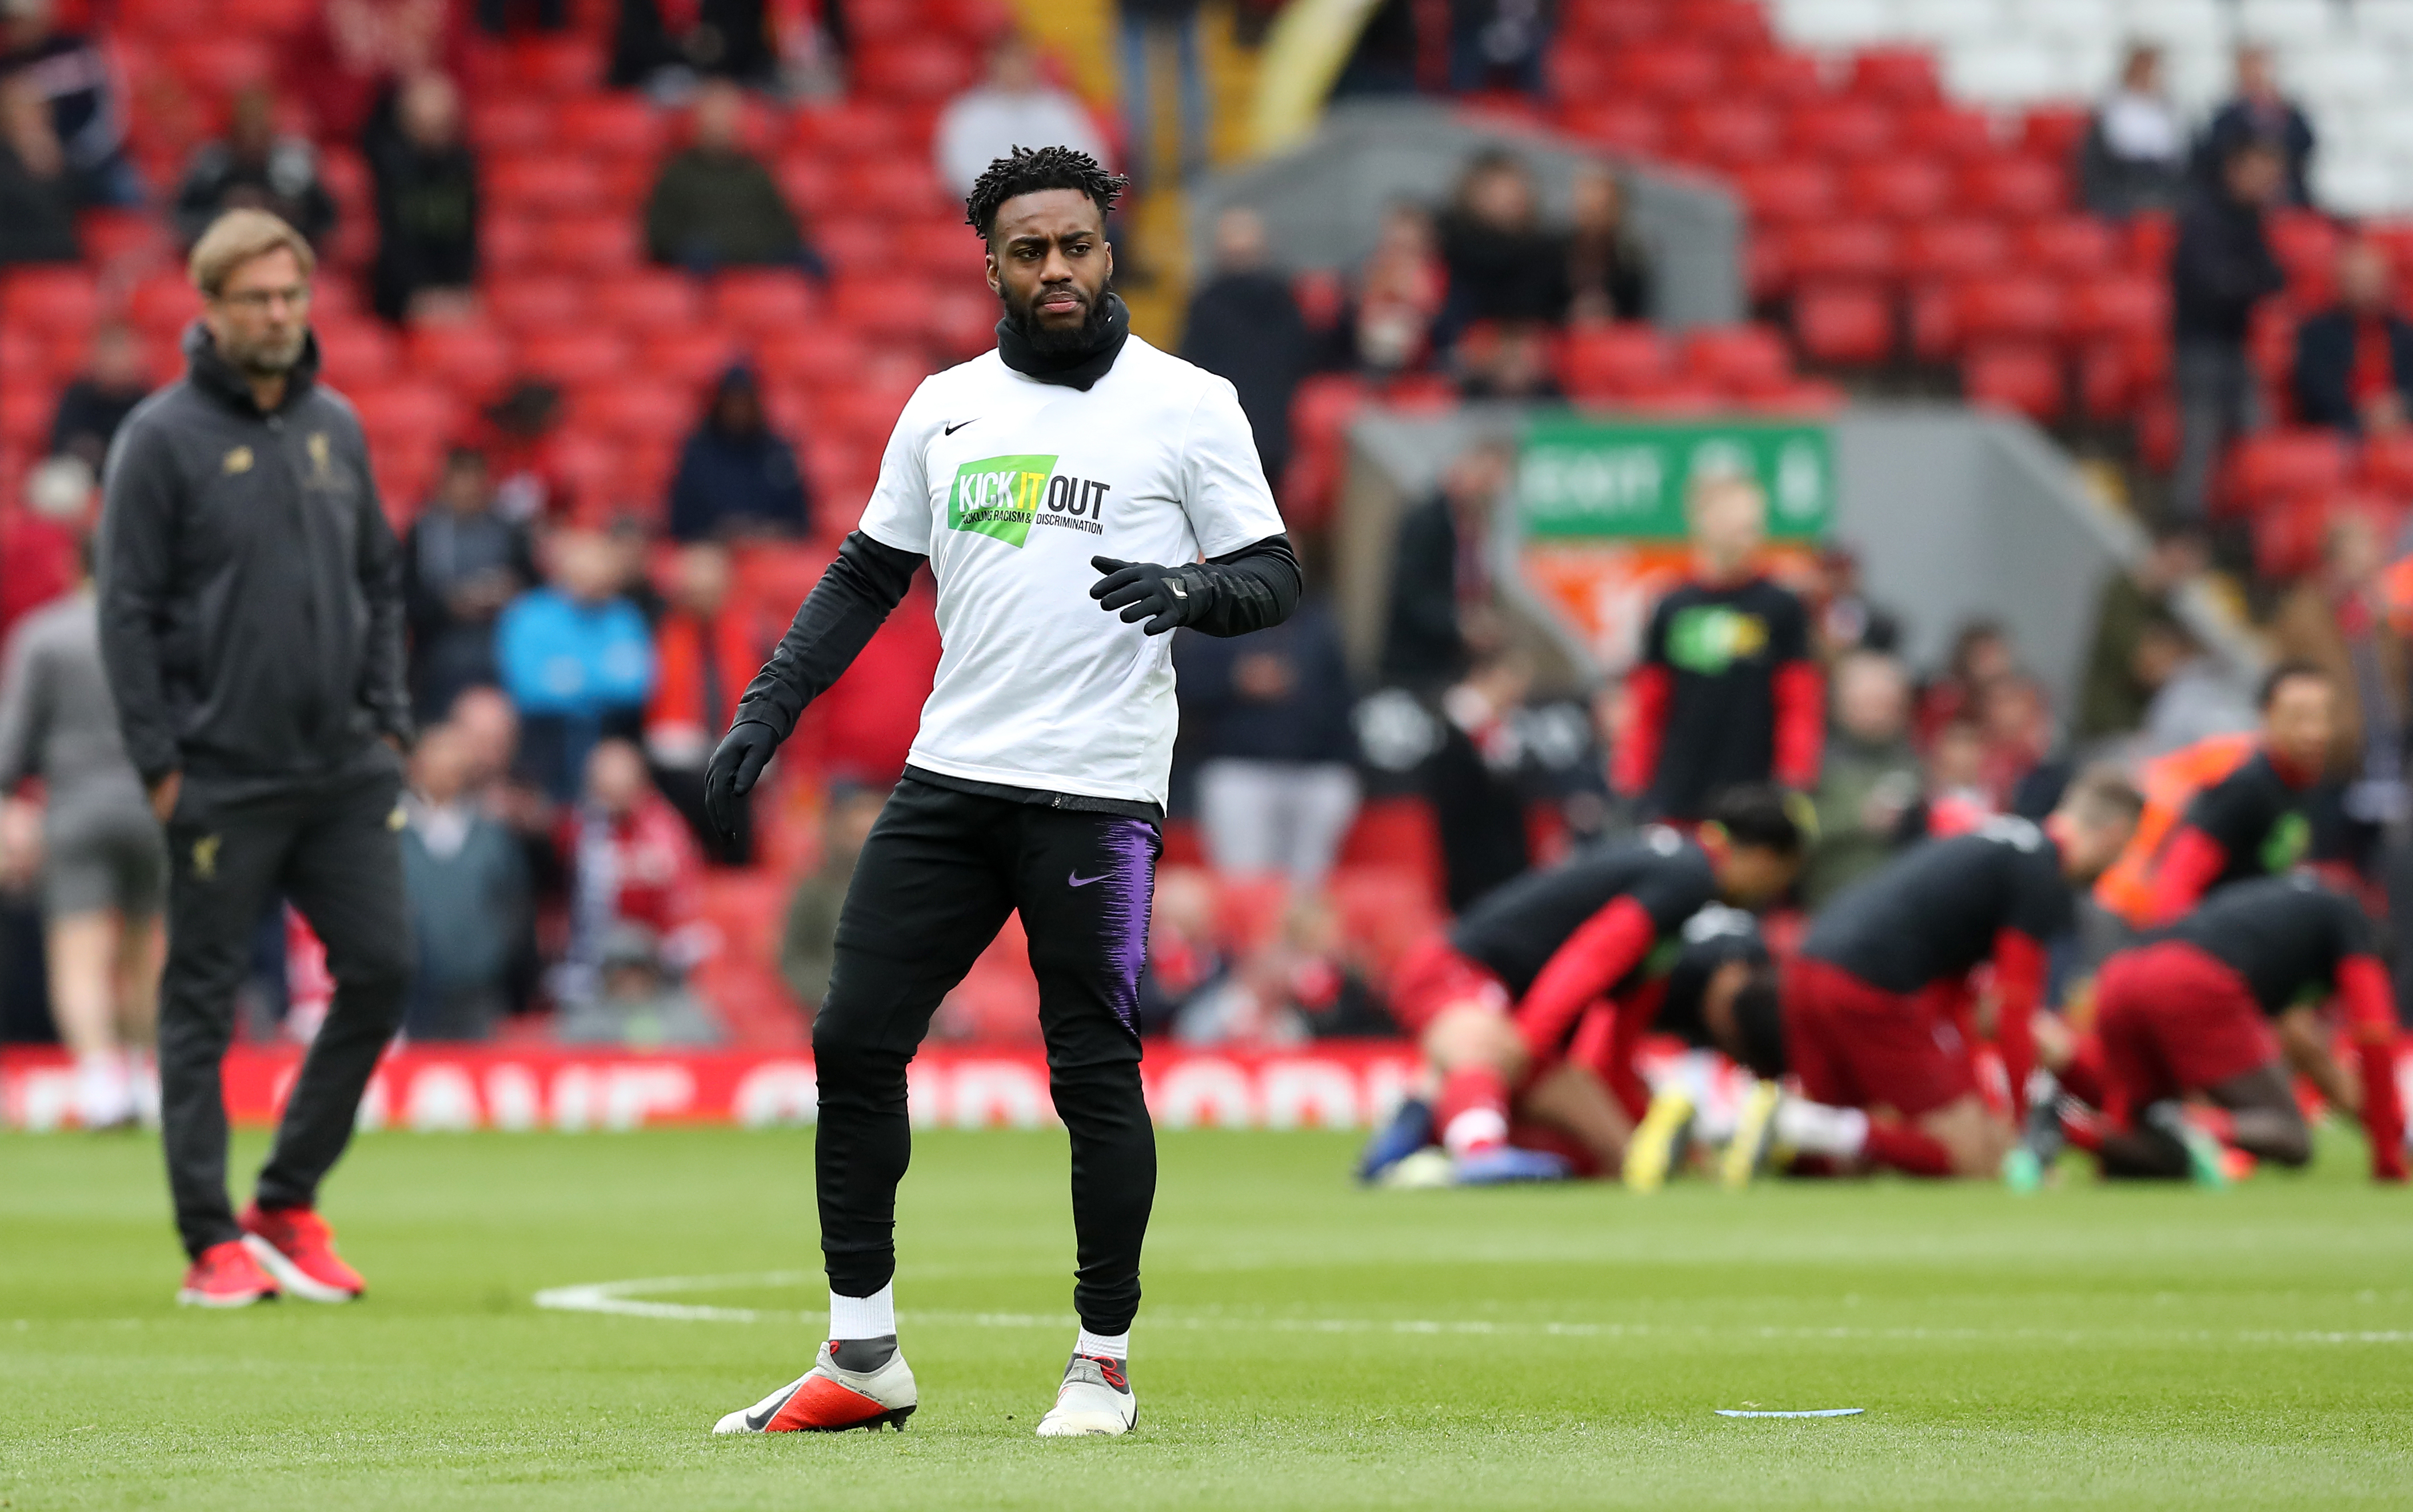 Rose sporting a 'Kick it Out' campaign t-shirt but clearly more needs to be done. Image: PA Images